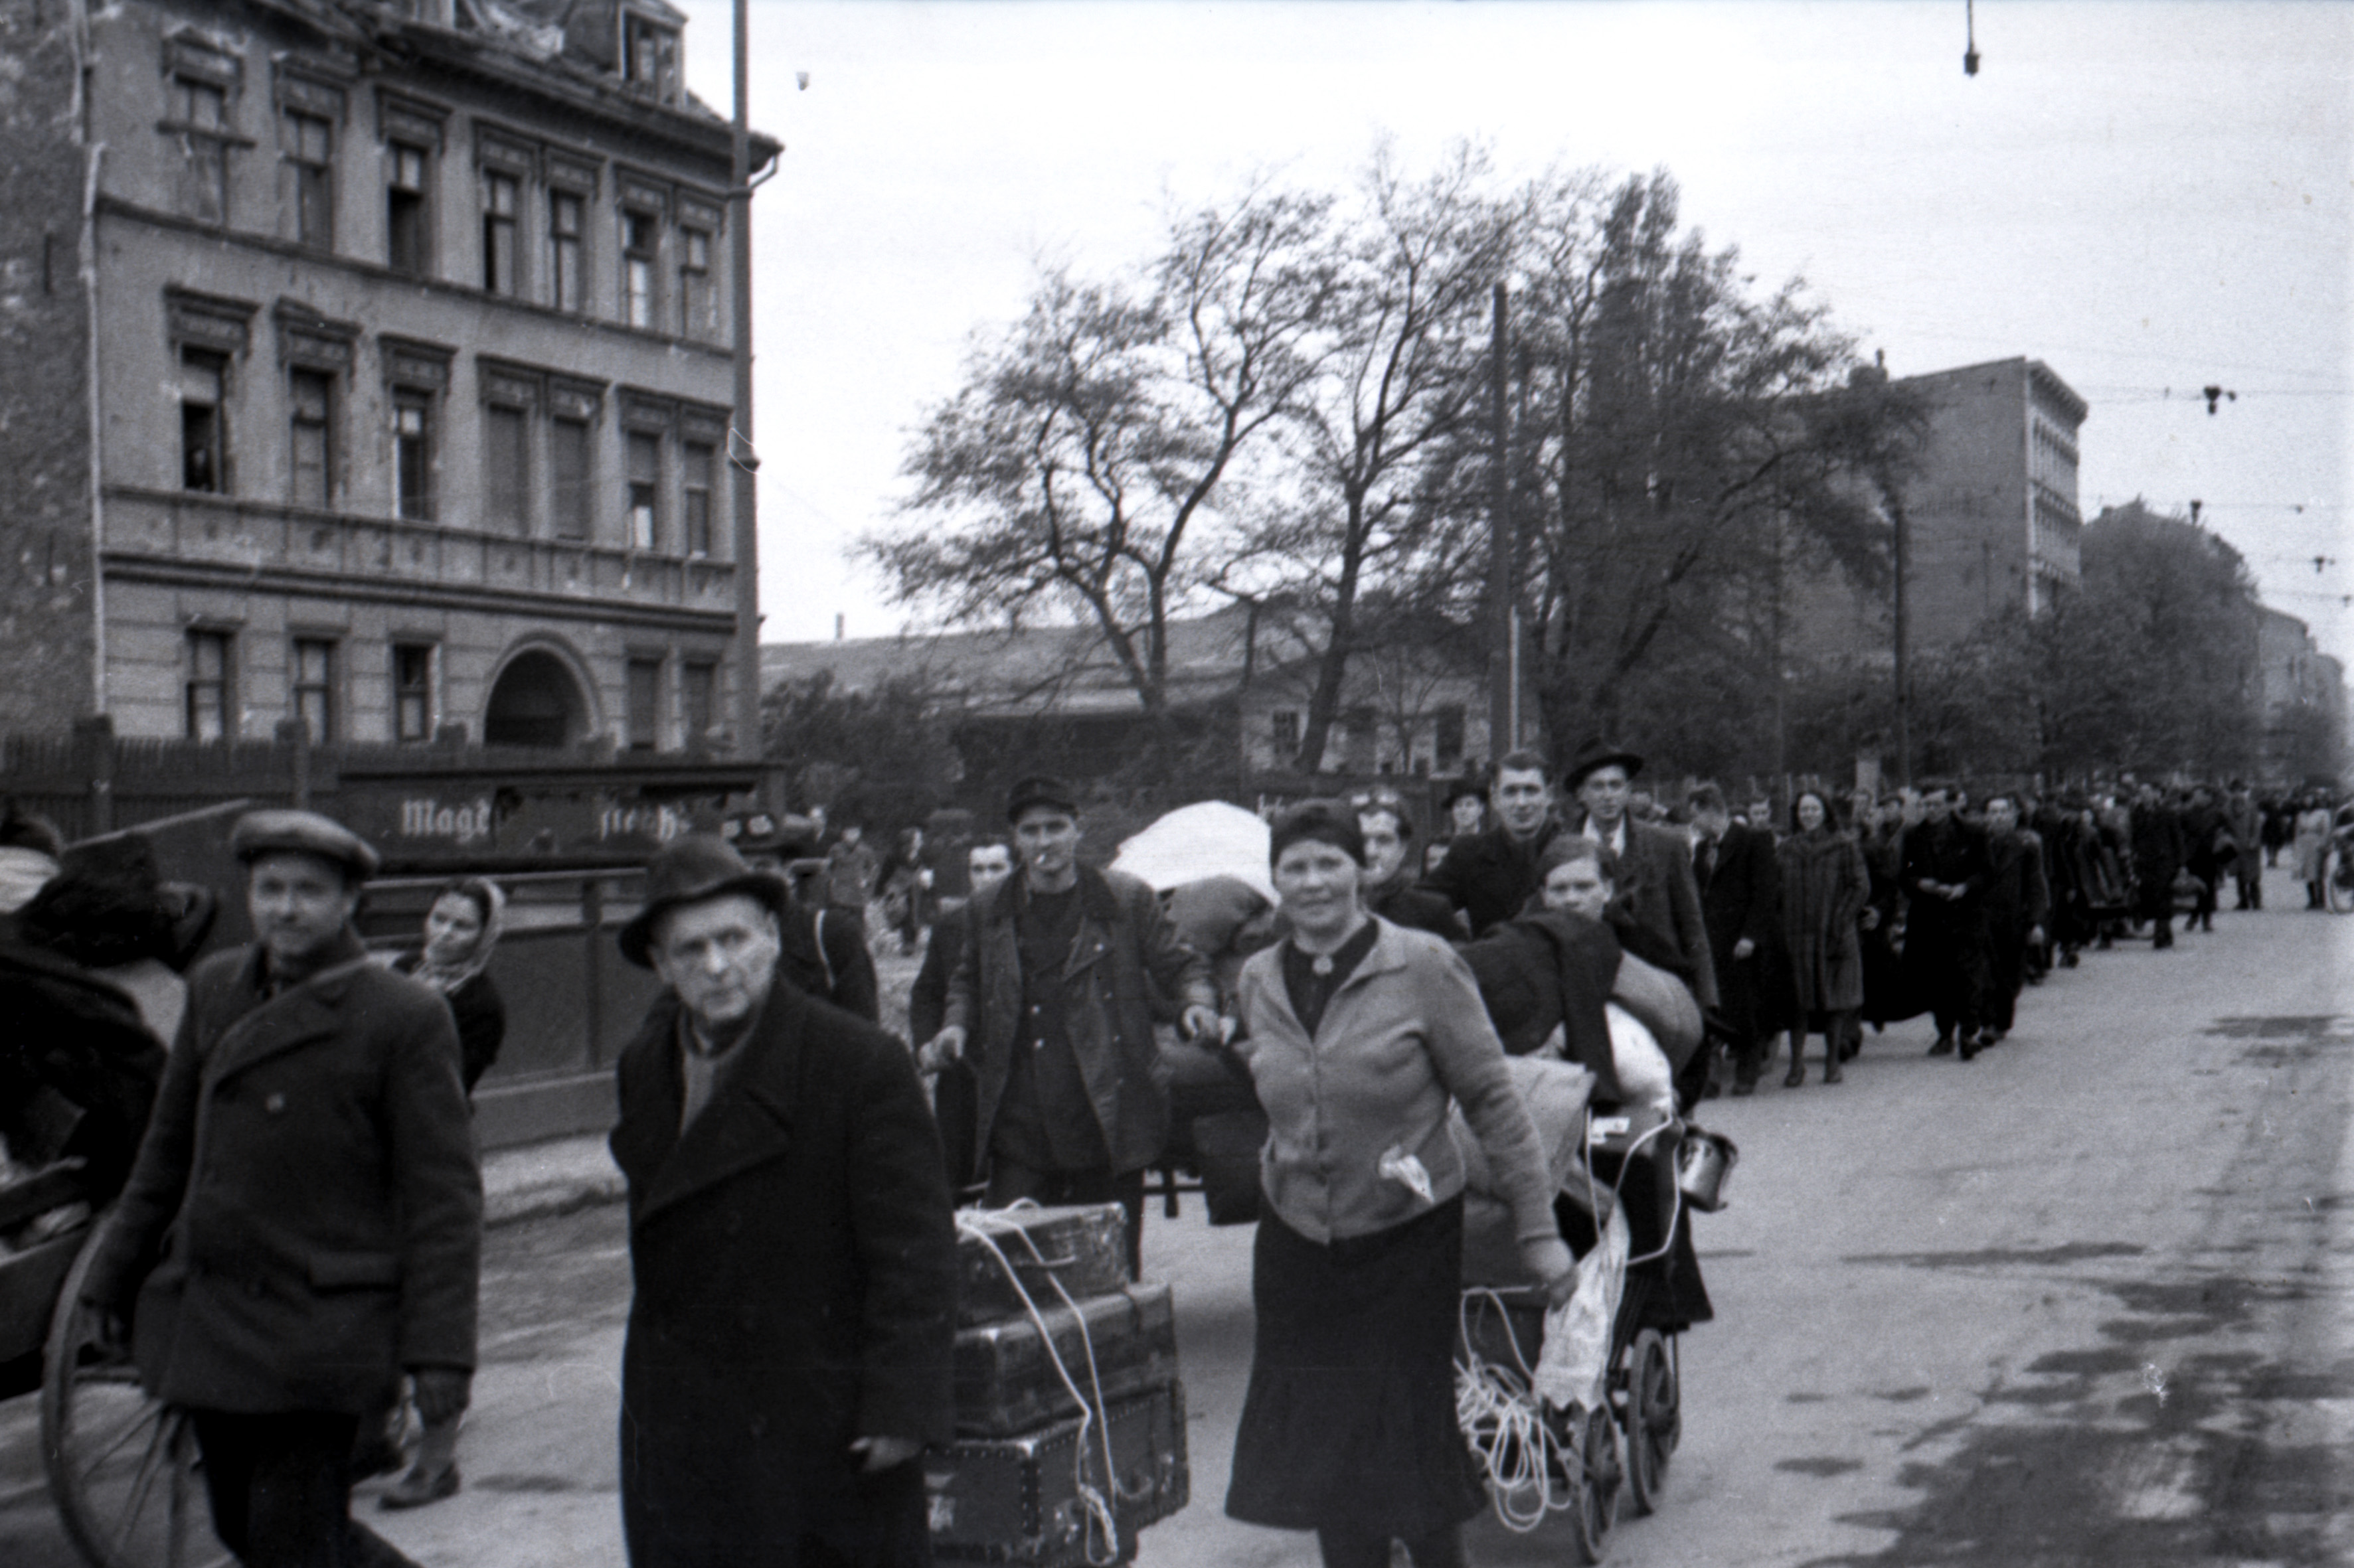 Displaced Persons after the liberation of Berlin, May 1945. Photo by Boris Puschkin © Stiftung Deutsches Historisches Museum.